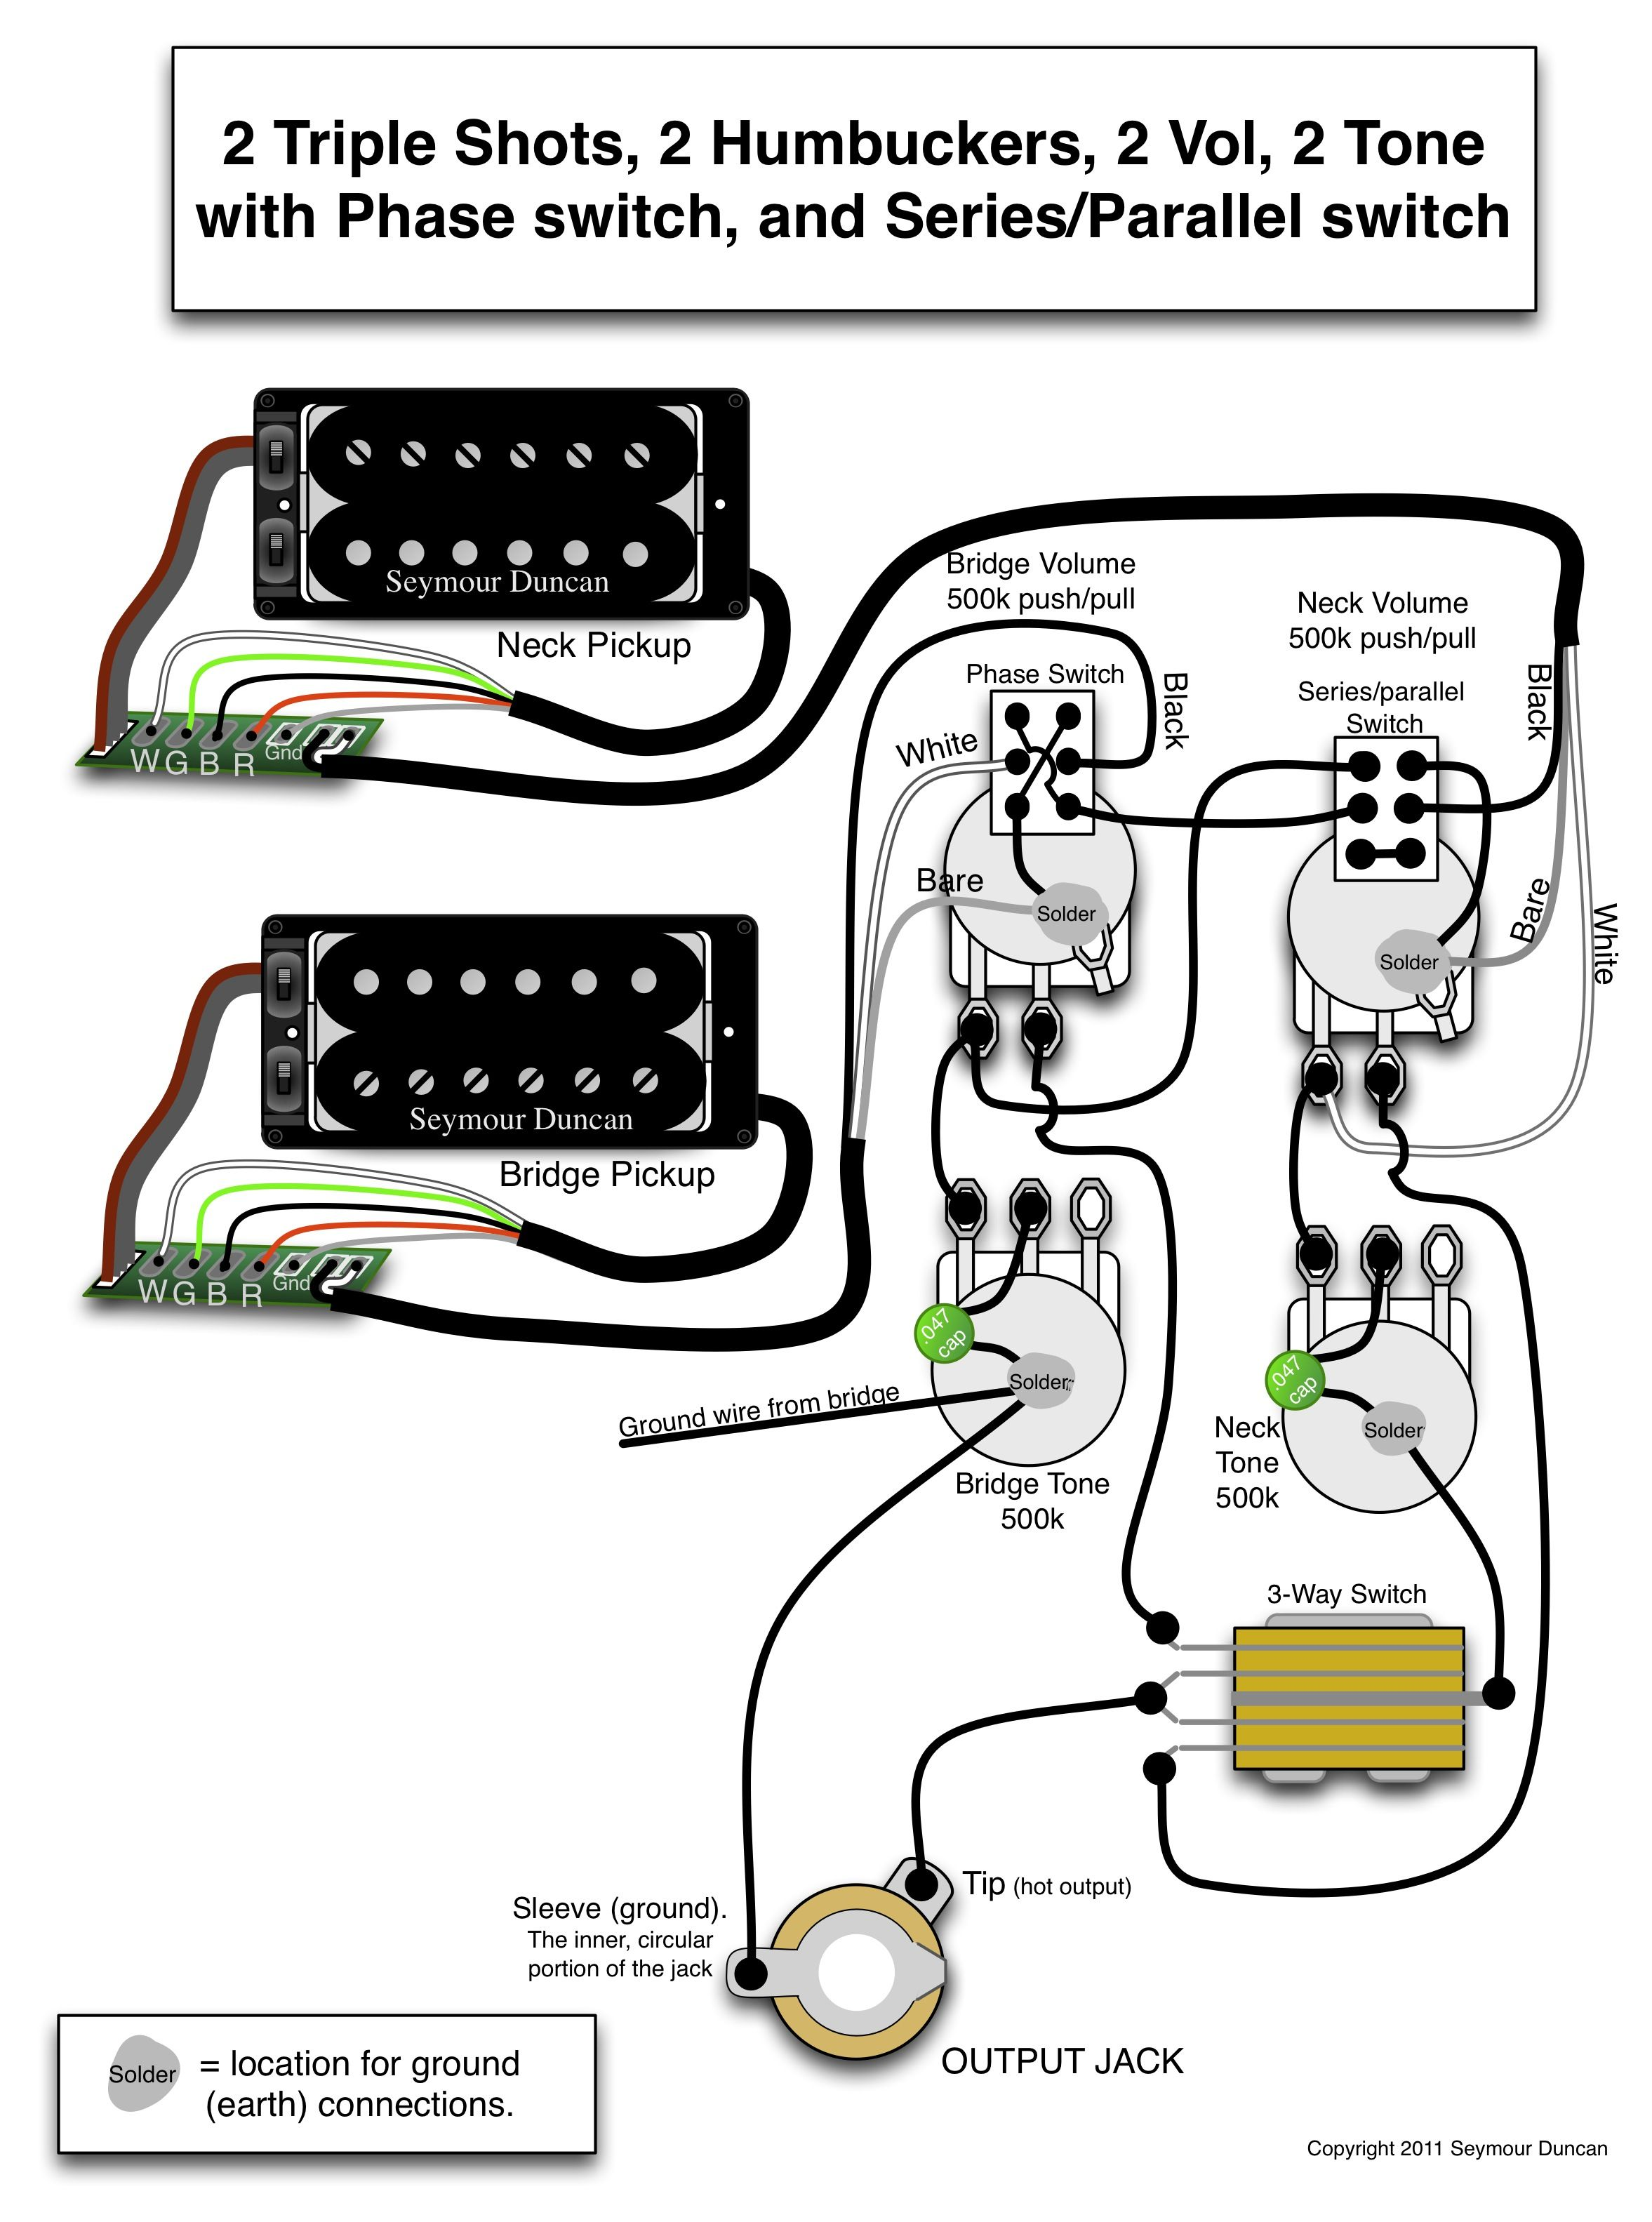 Seymour Duncan Wiring Diagram 2 Triple Shots 2 Humbuckers 2 Vol 2 Tone One With Phase Switch And The Other W Yamaha Guitar Guitar Building Guitar Pickups